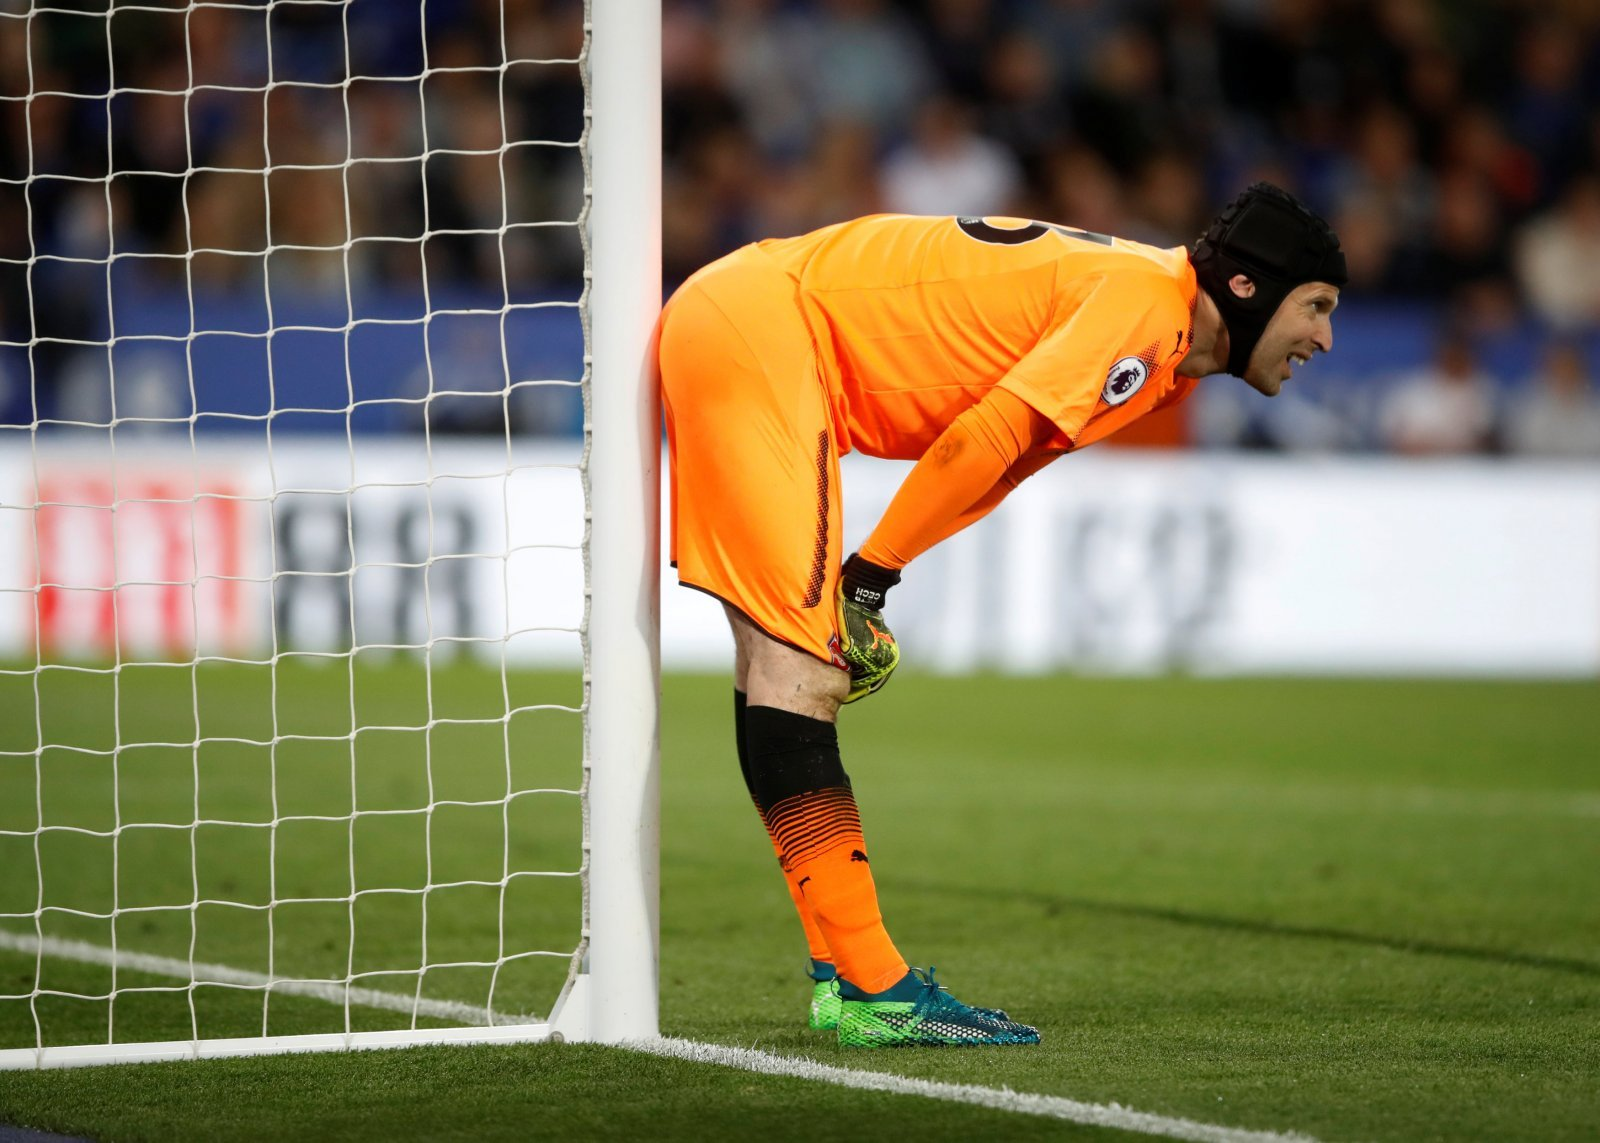 Chelsea fans want the club to stay well away from Petr Cech